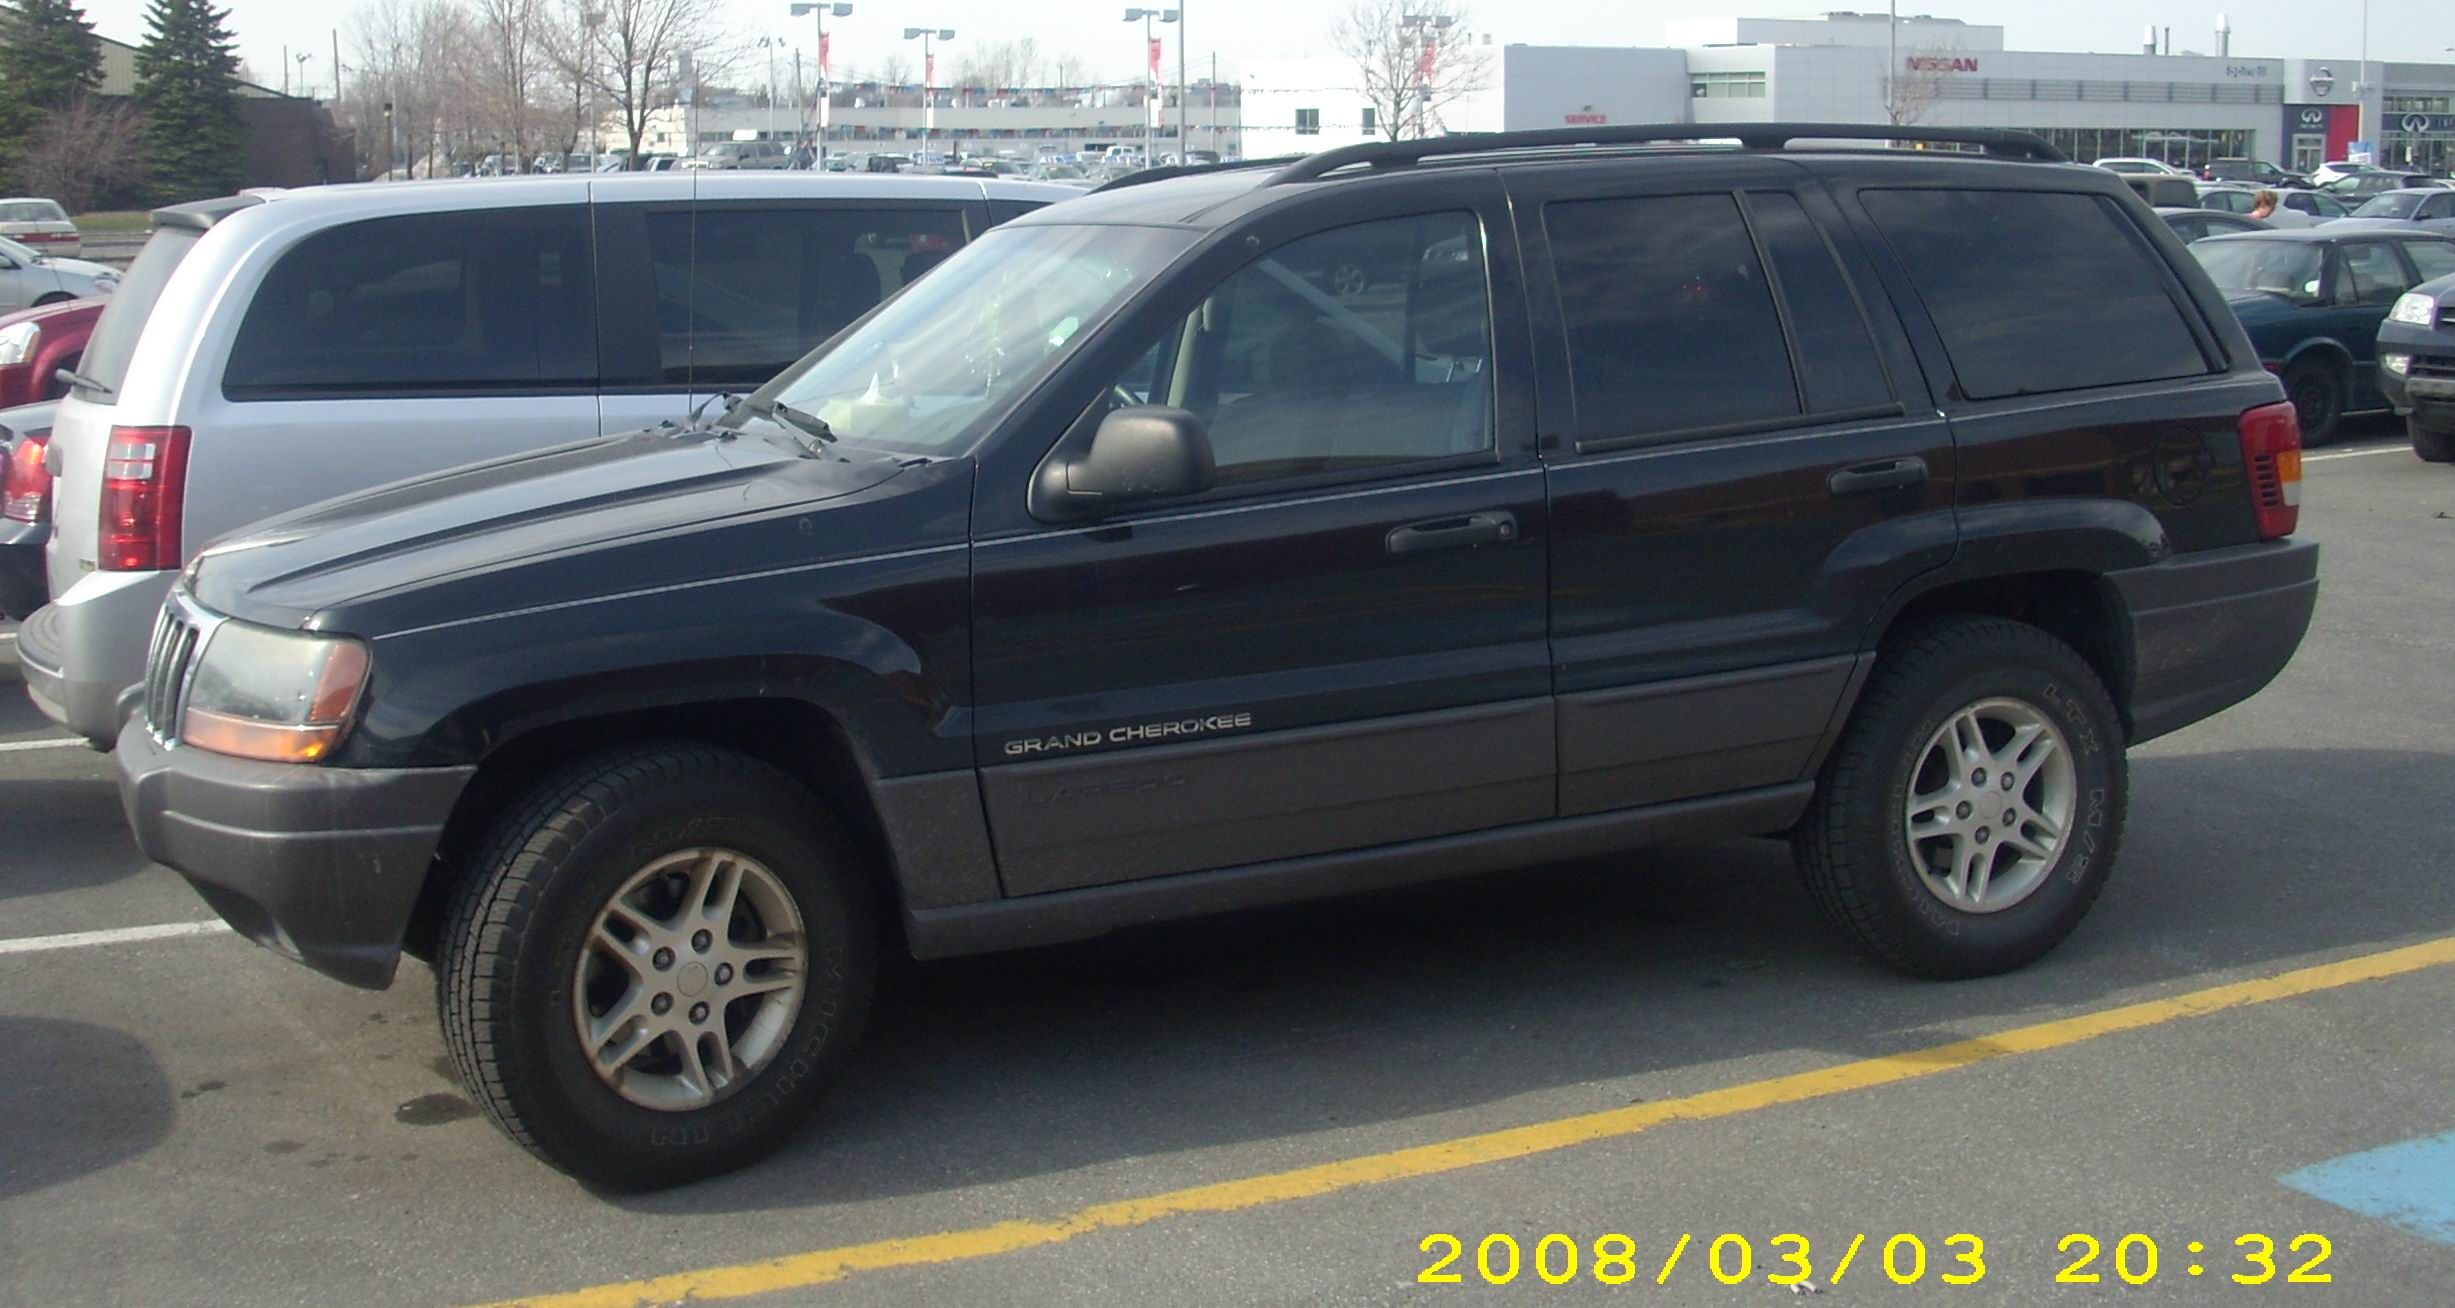 2003 jeep grand cherokee problems jpeg - http://carimagescolay.casa